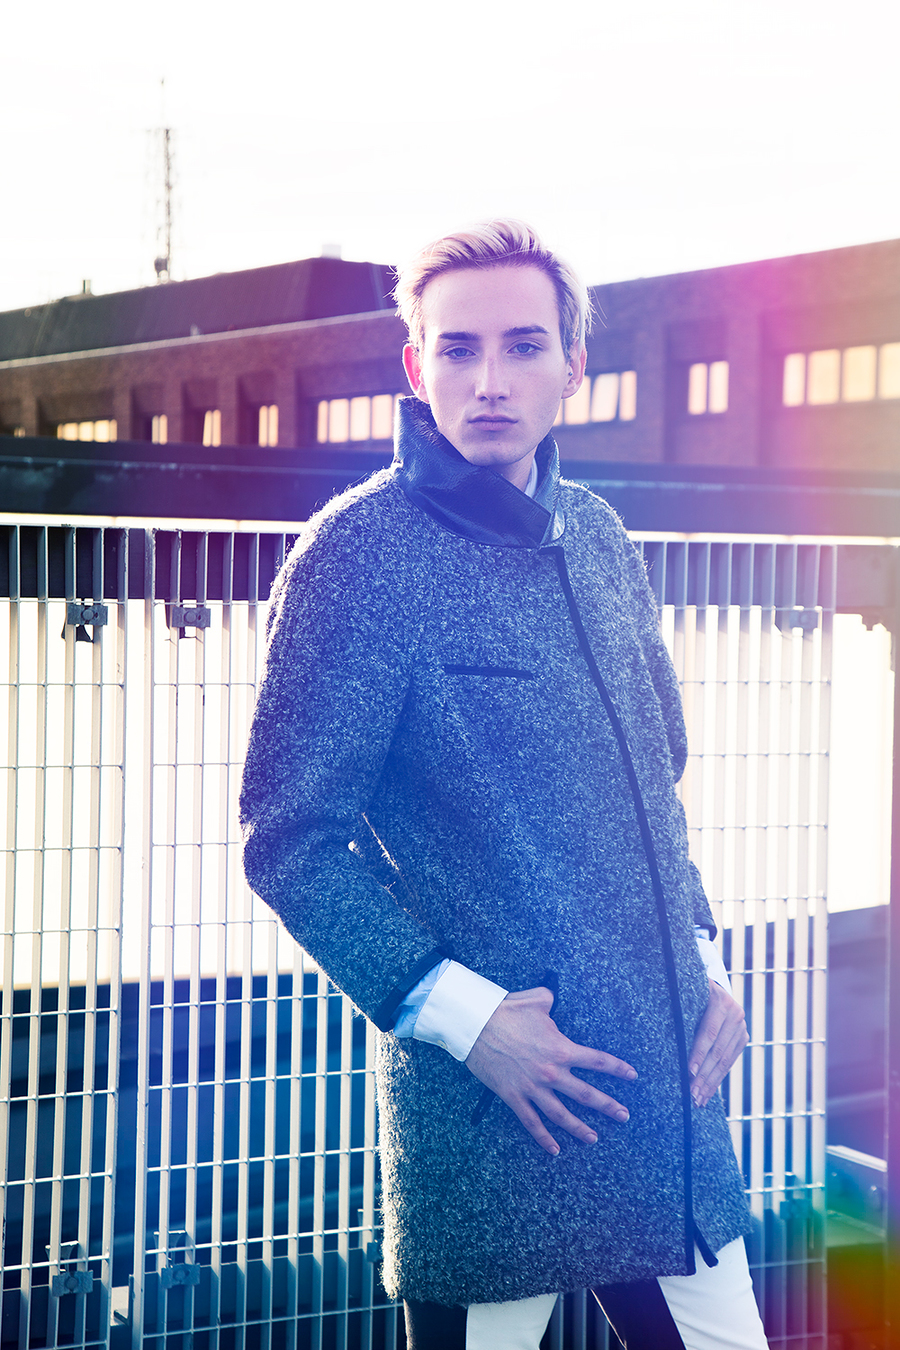 A/W looks with Zak / Model oliversedgwick / Uploaded 2nd October 2016 @ 04:57 PM